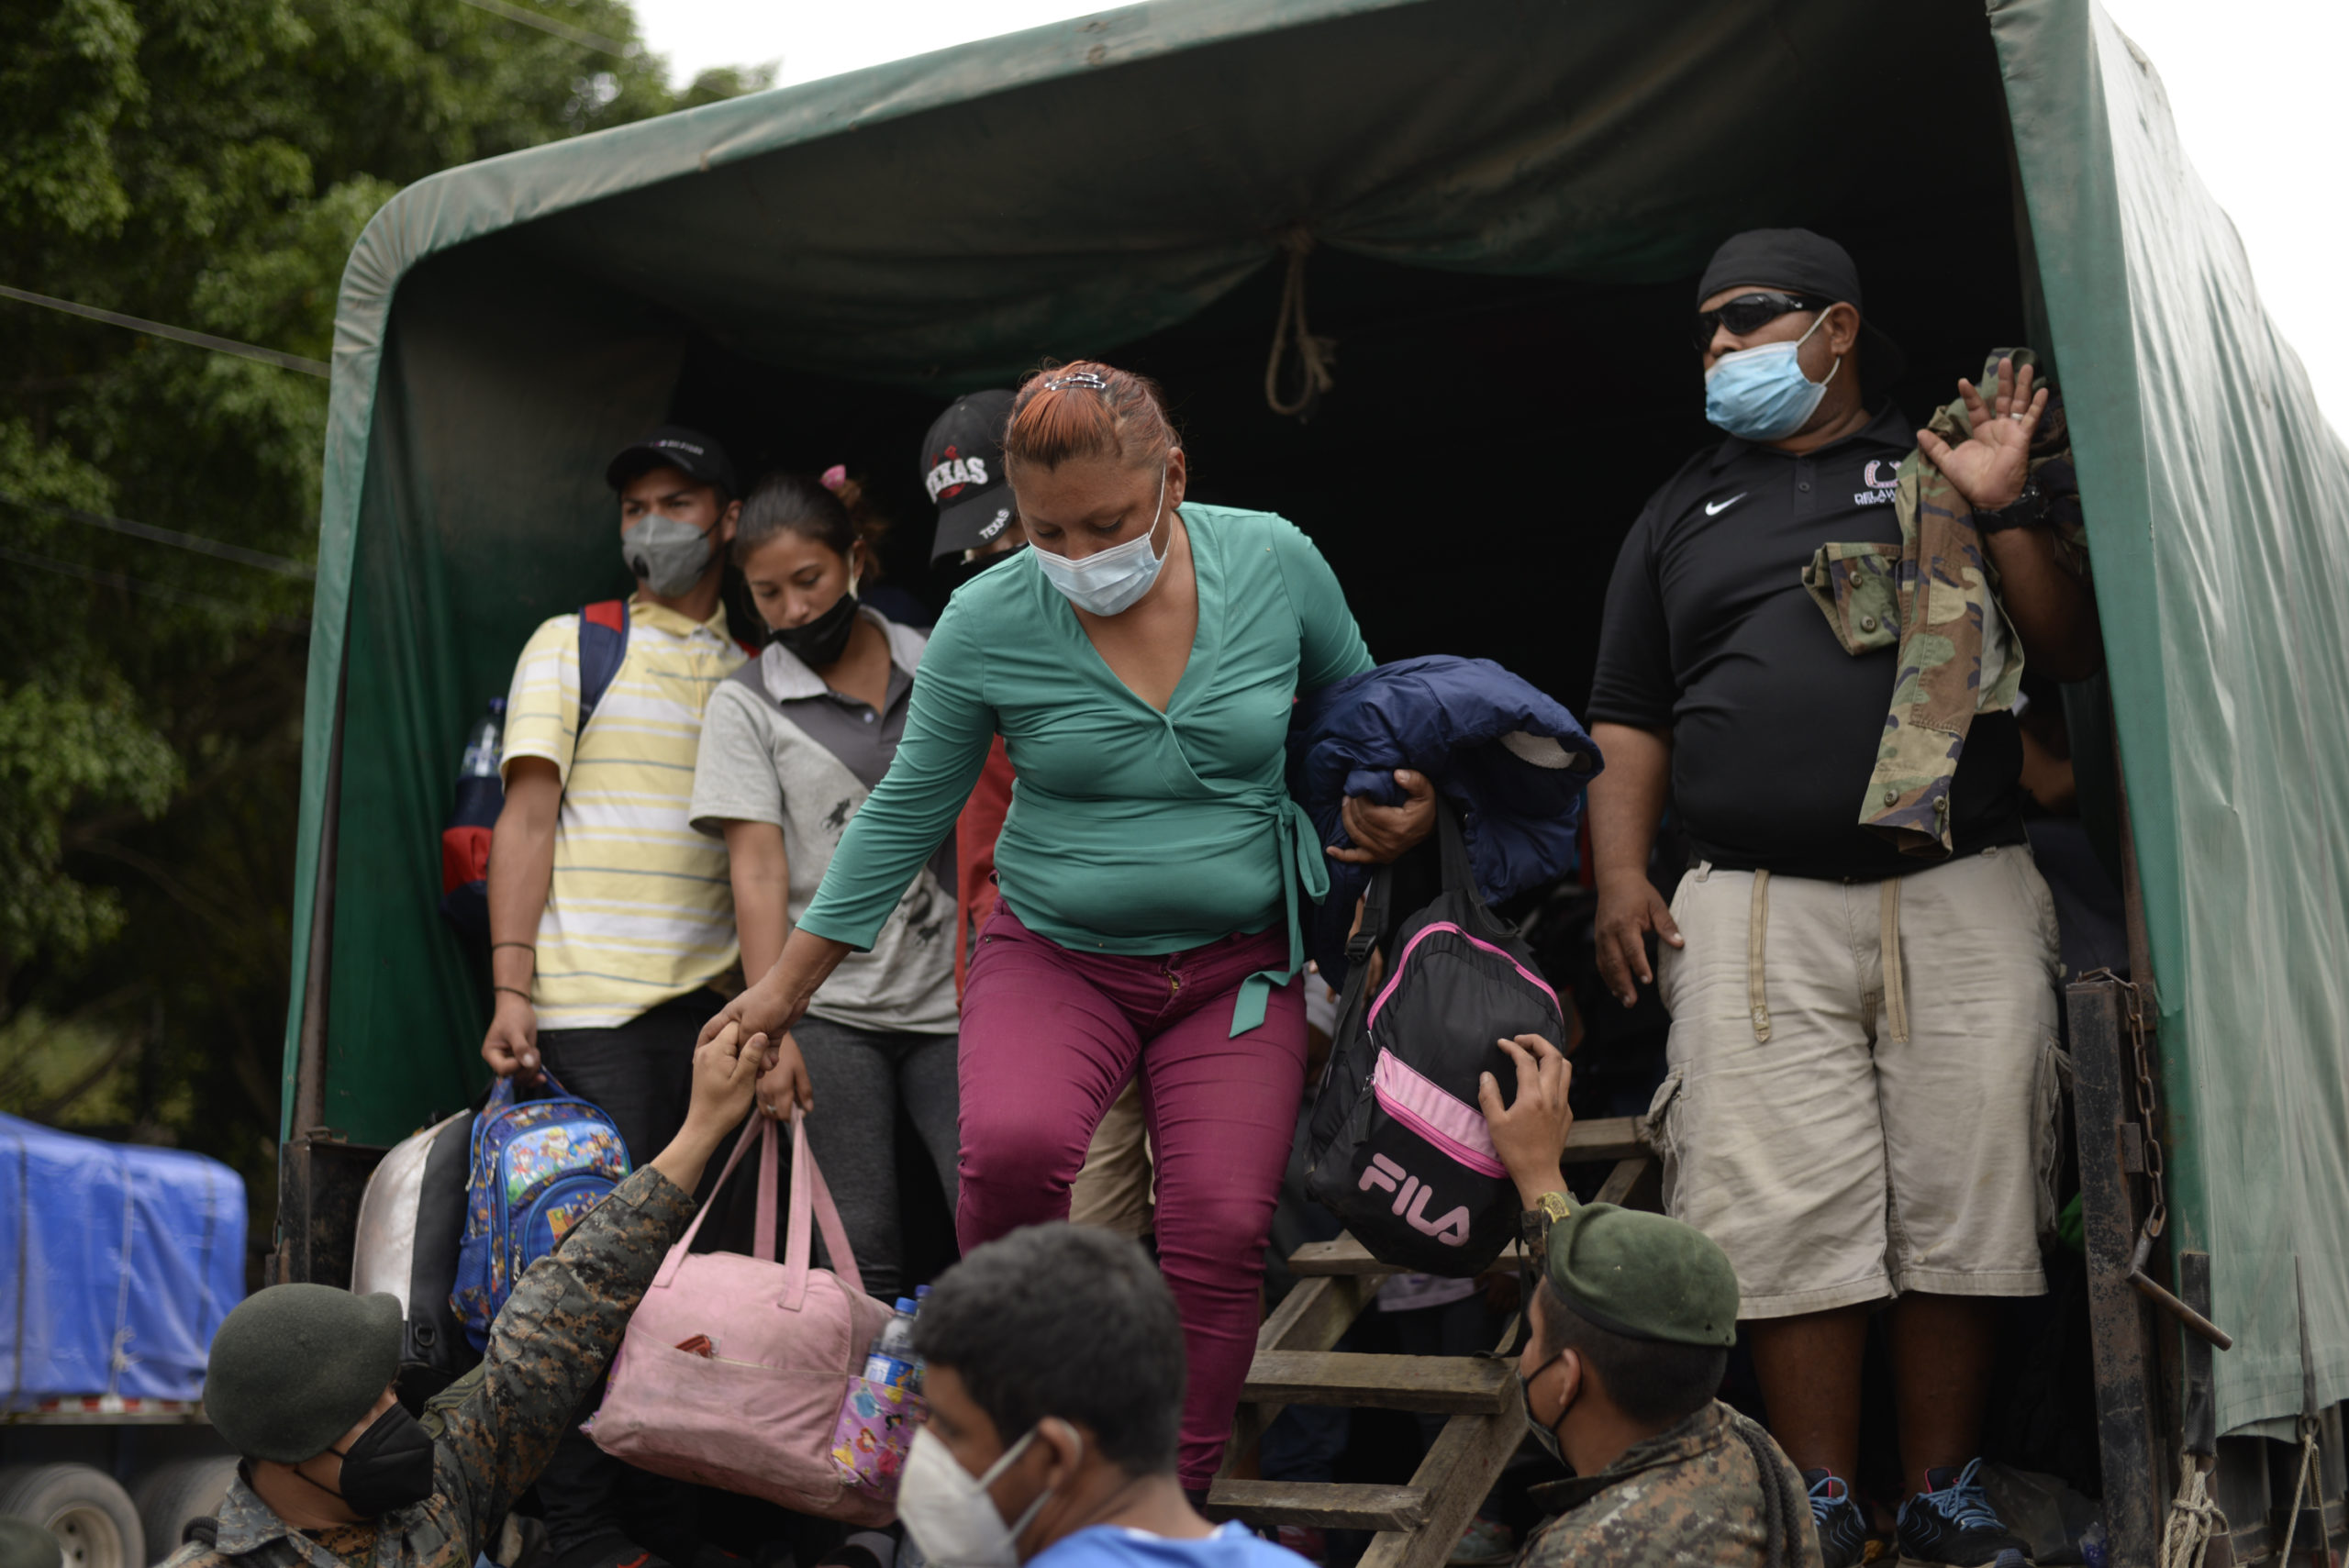 Honduran migrants who were part of a U.S.-bound caravan are helped getting out of a truck in Guatemala on Jan. 19. (Johan Ordonez/AFP via Getty Images)